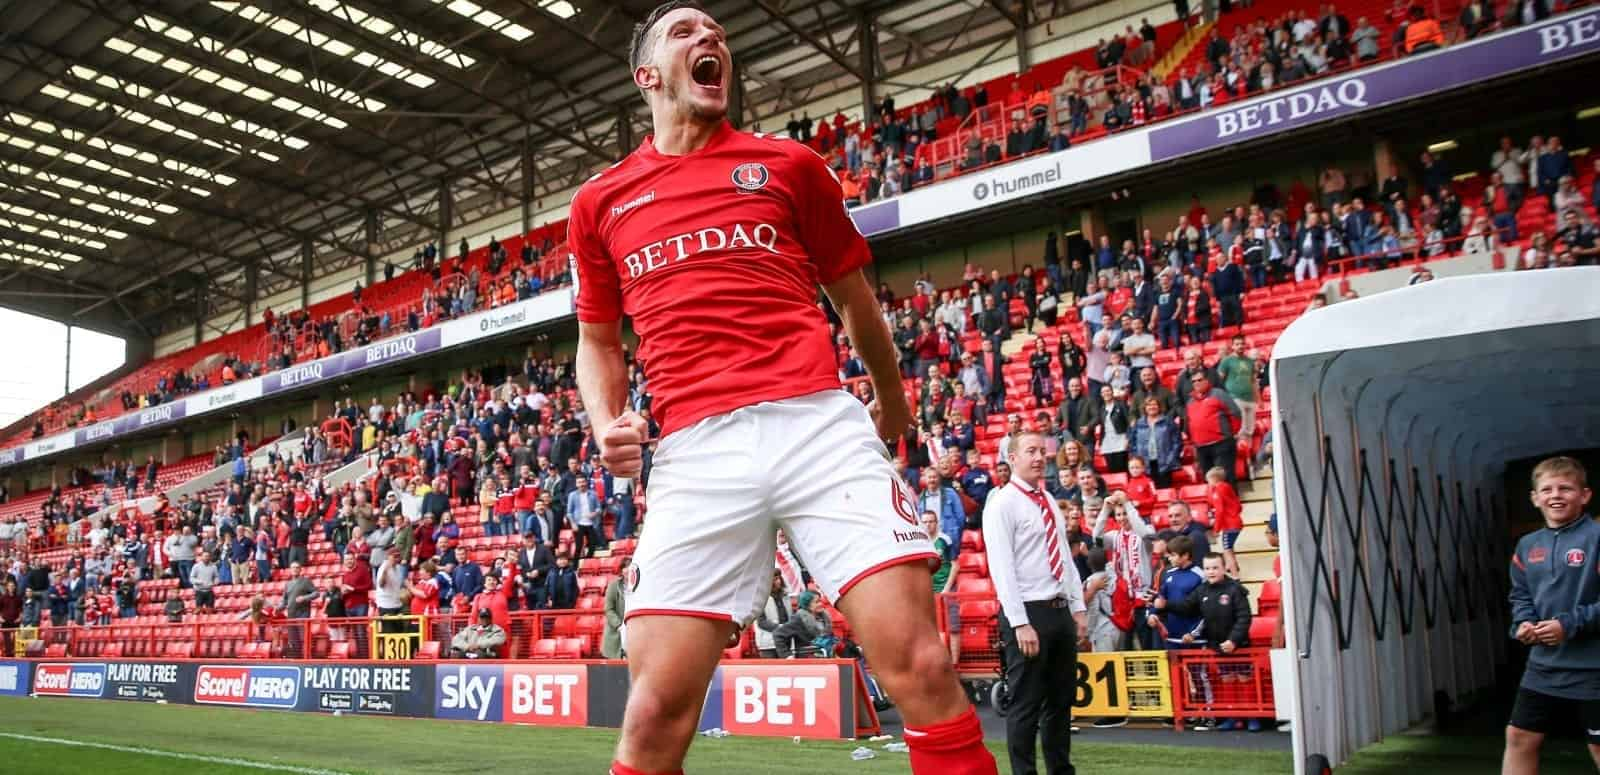 Charlton Athletic's Jason Pearce celebrates their victory